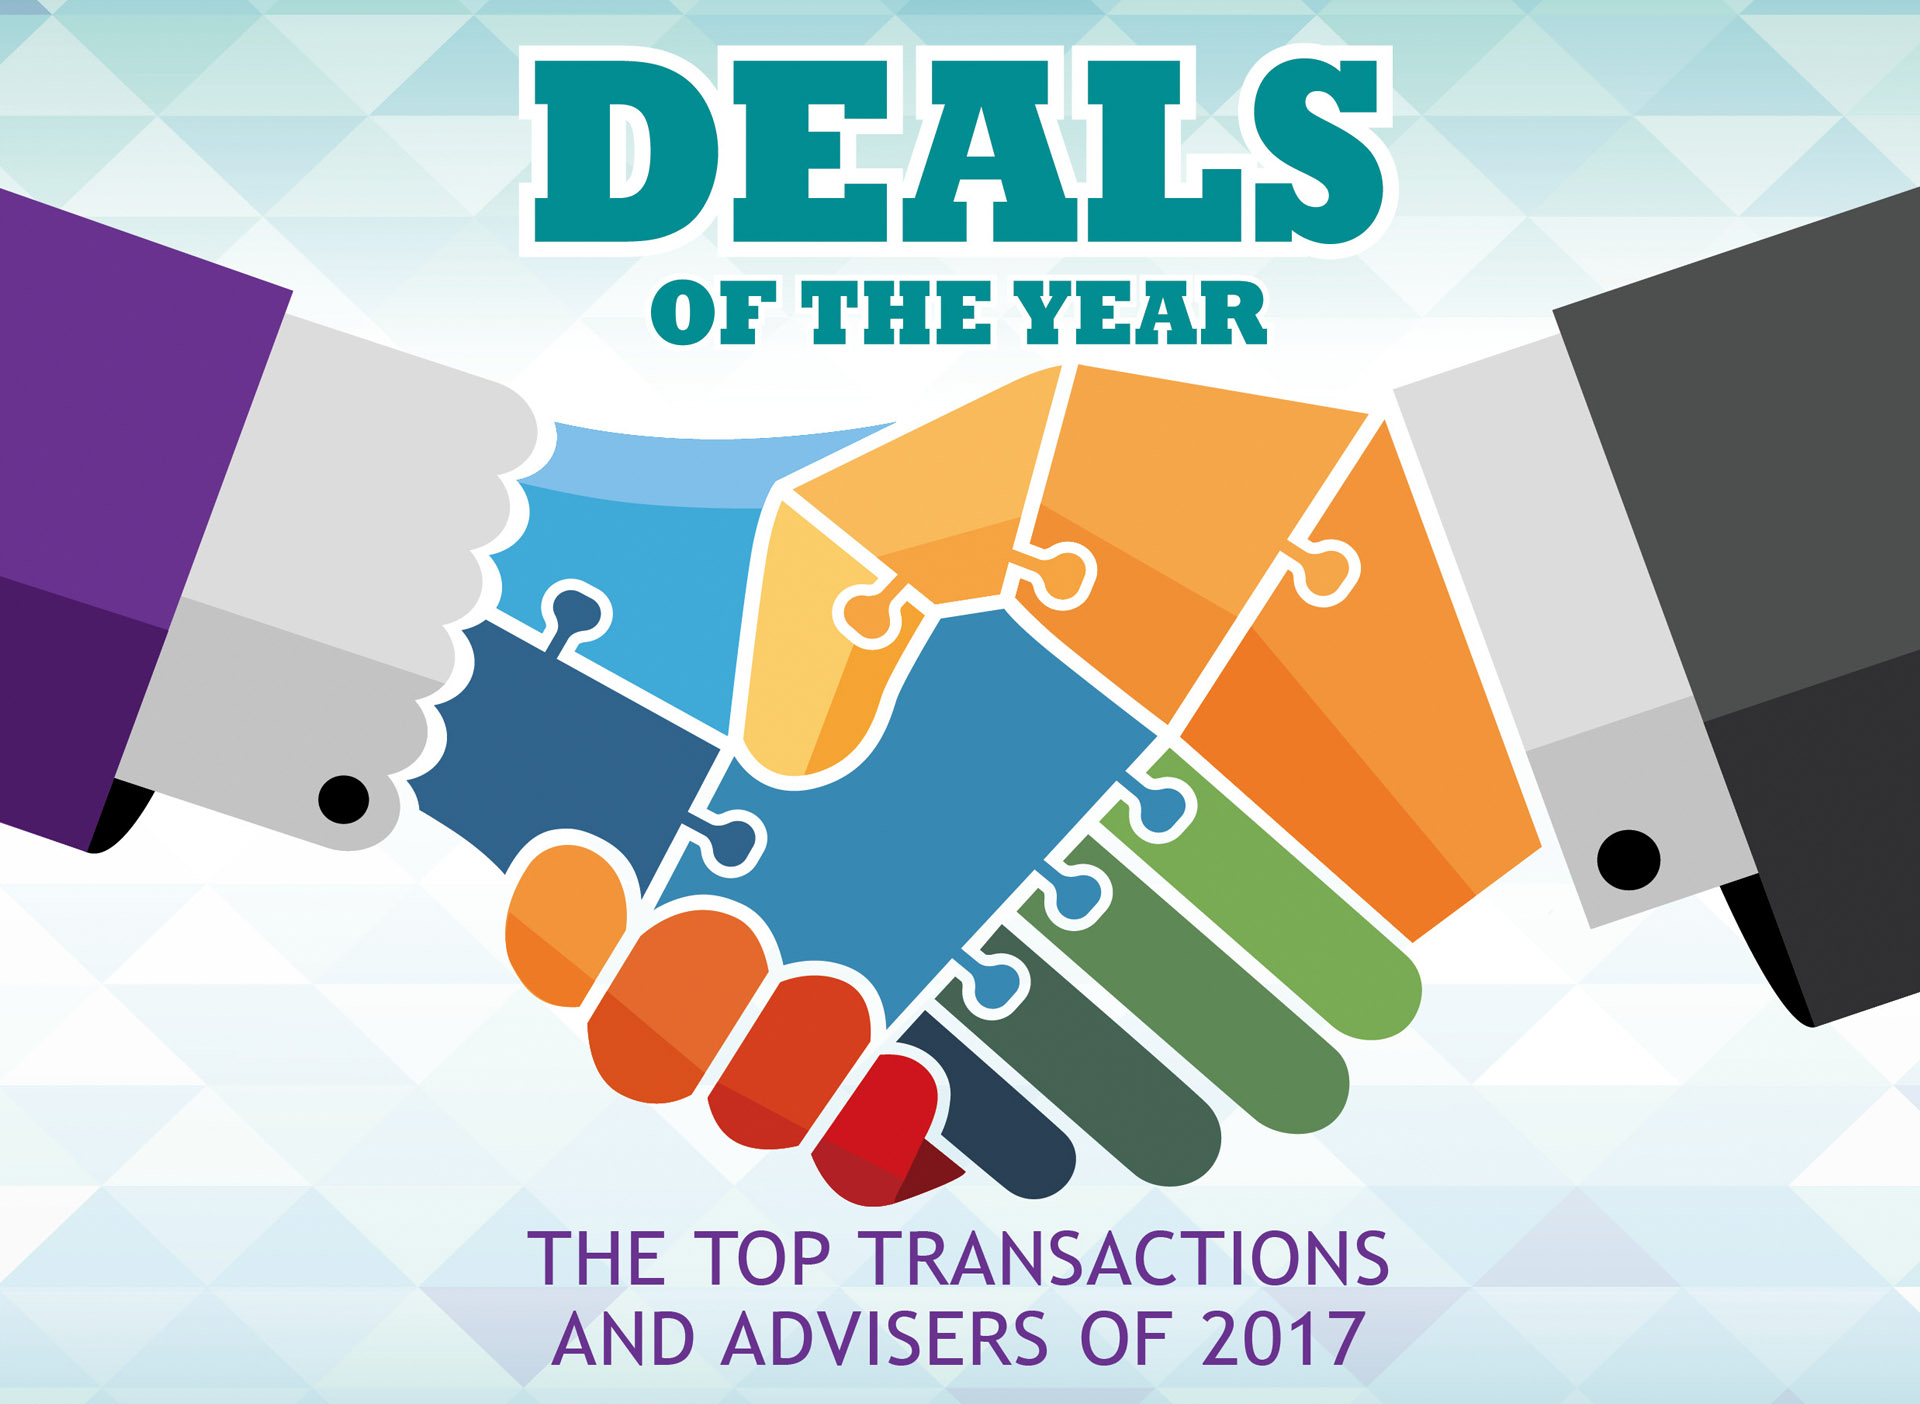 Deals of the year 2017